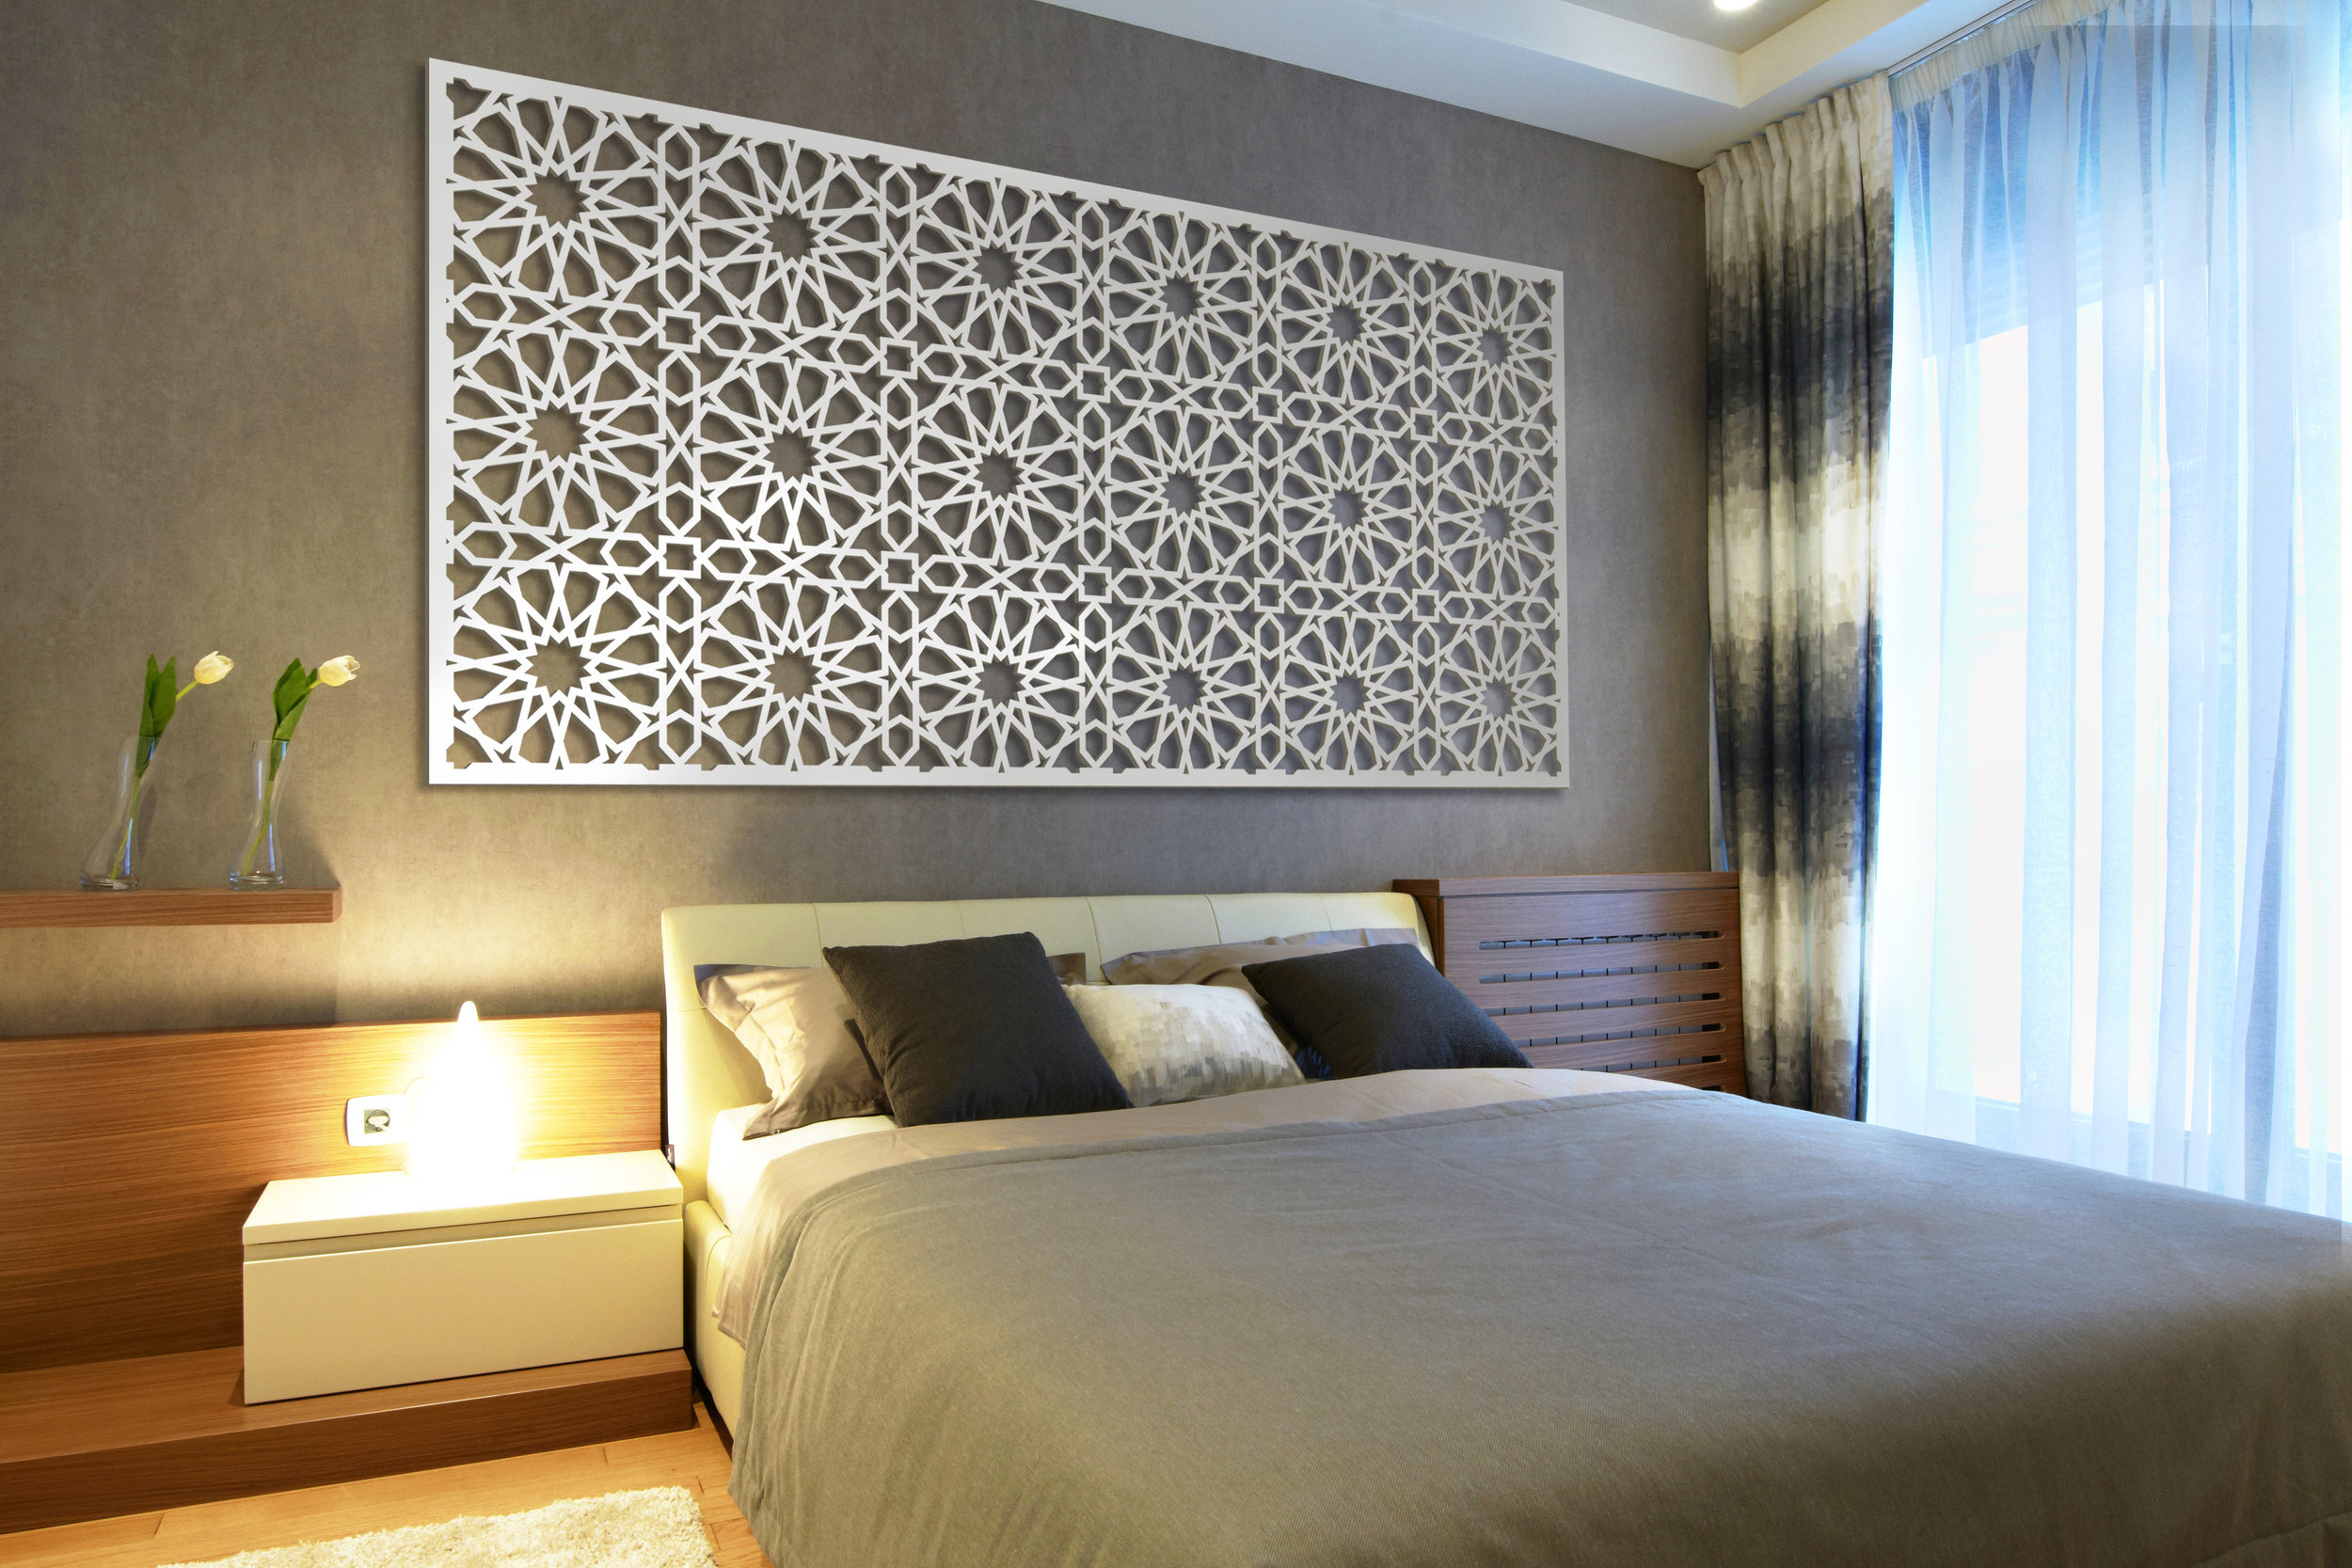 Installation Rendering C   Star Pattern decorative hotel wall panel - painted